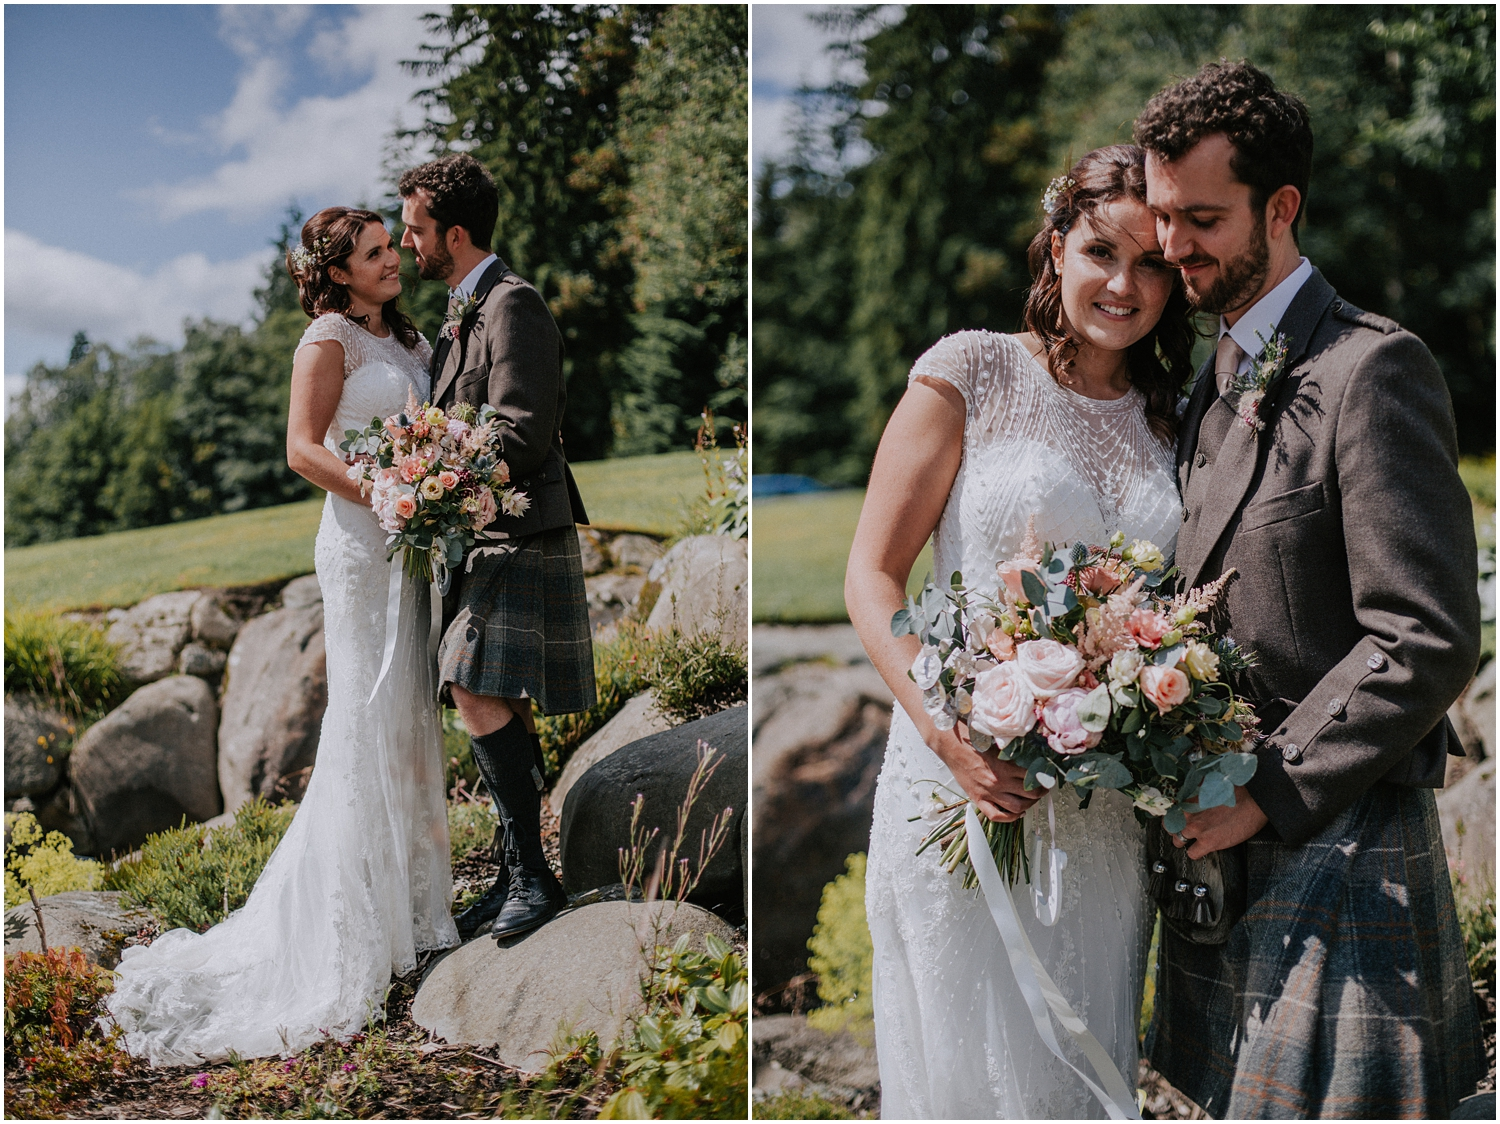 Natural and relaxed wedding photographer at Altskeith Country House on Loch Ard in Scotland